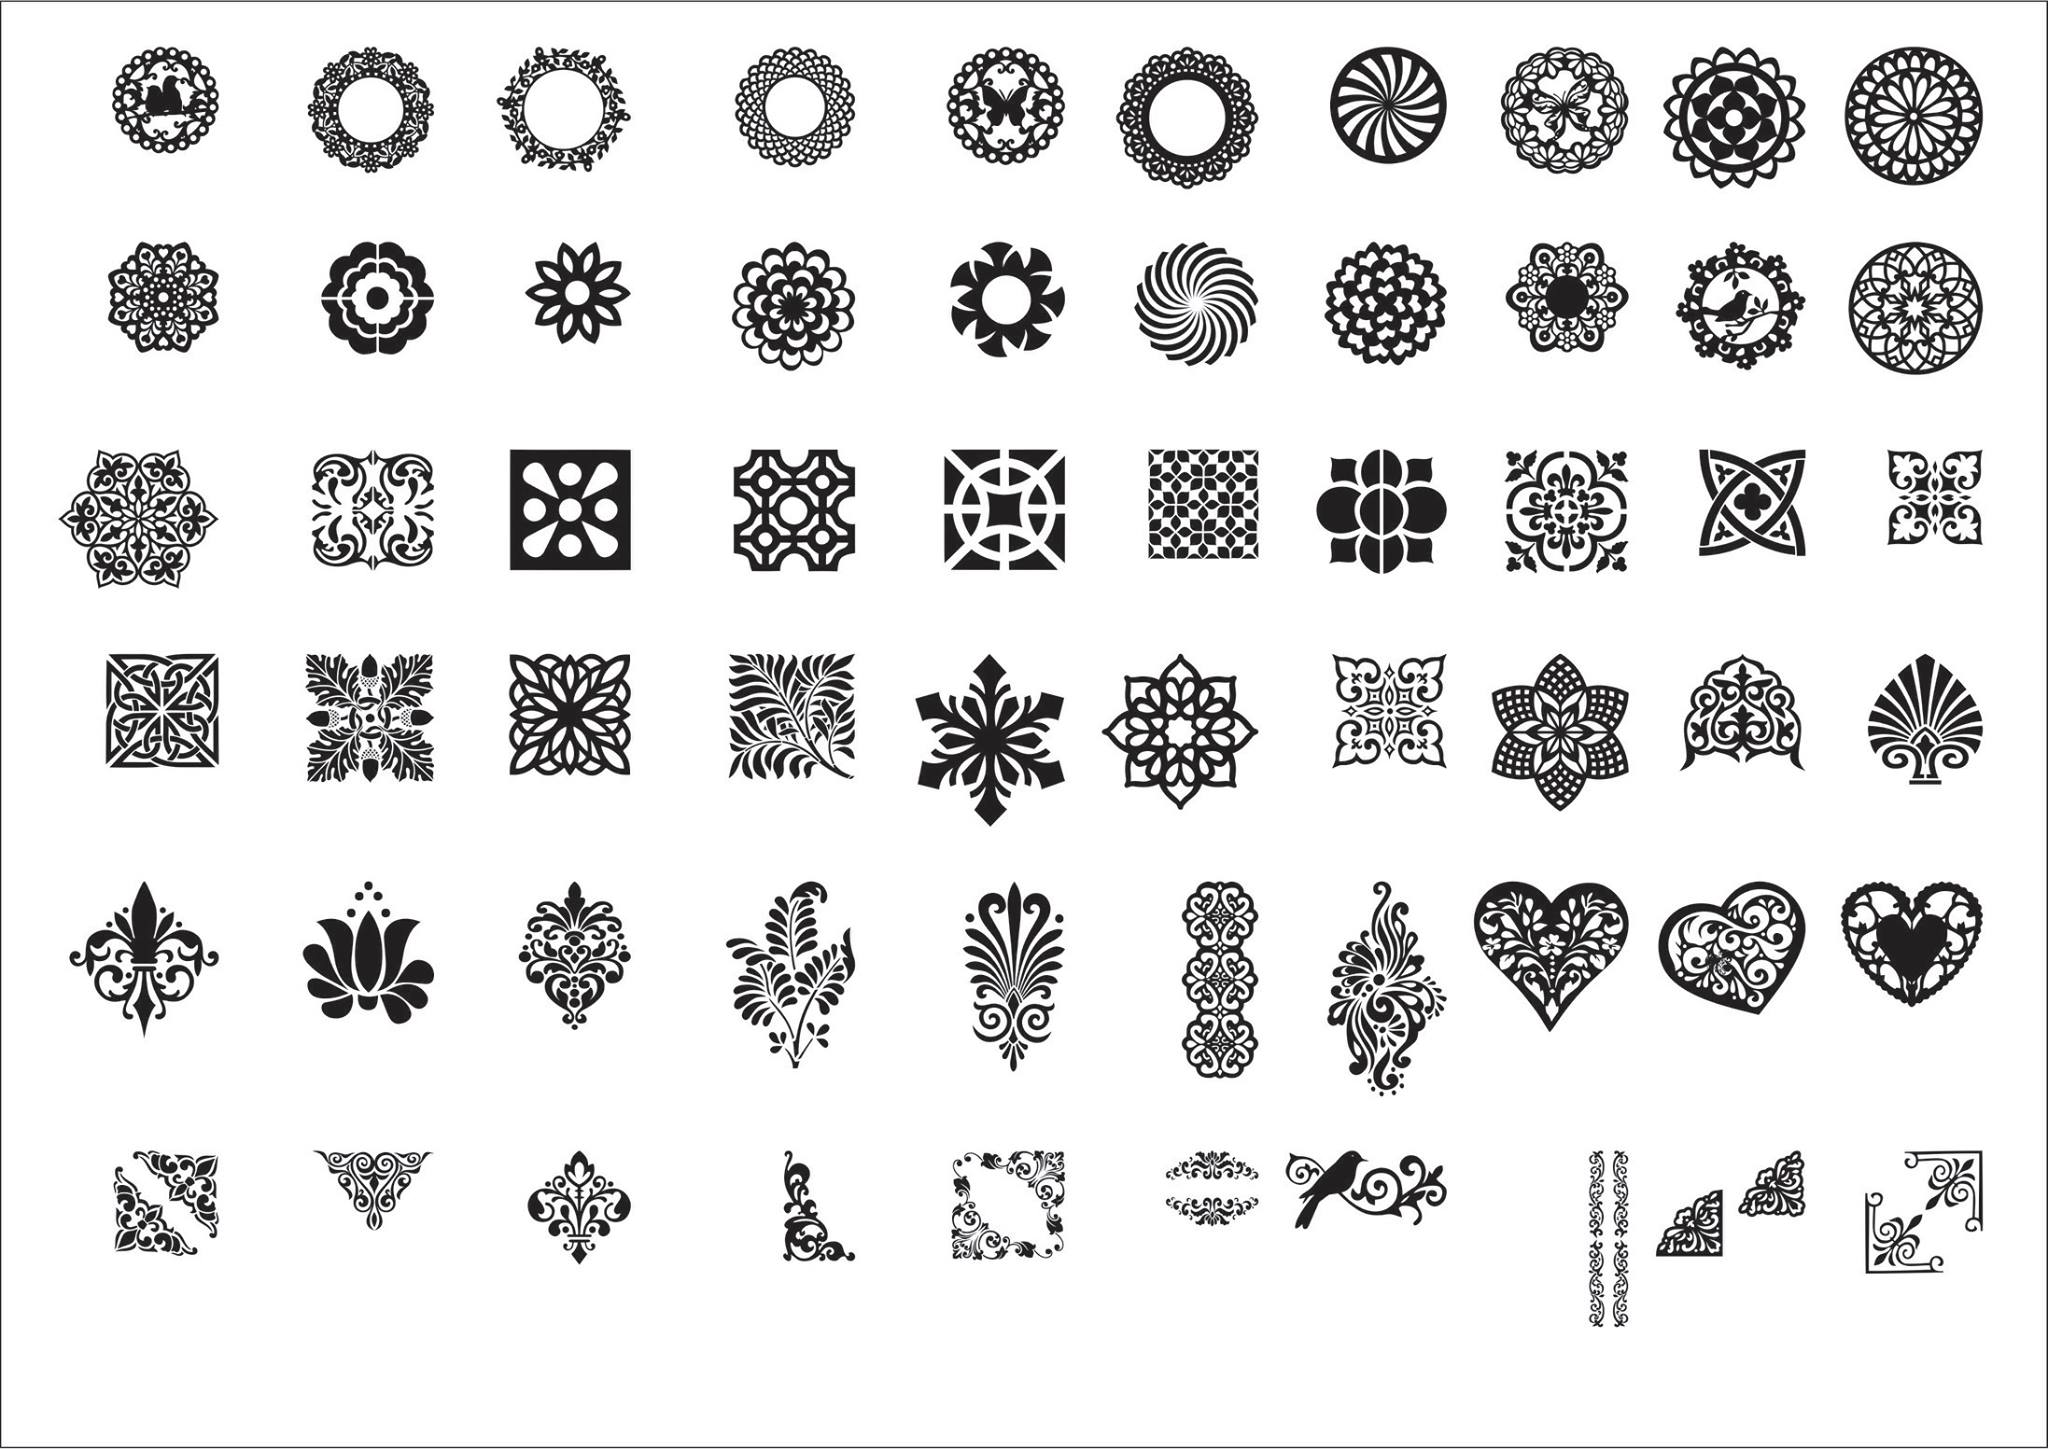 Diverse Patterns Collection DXF File